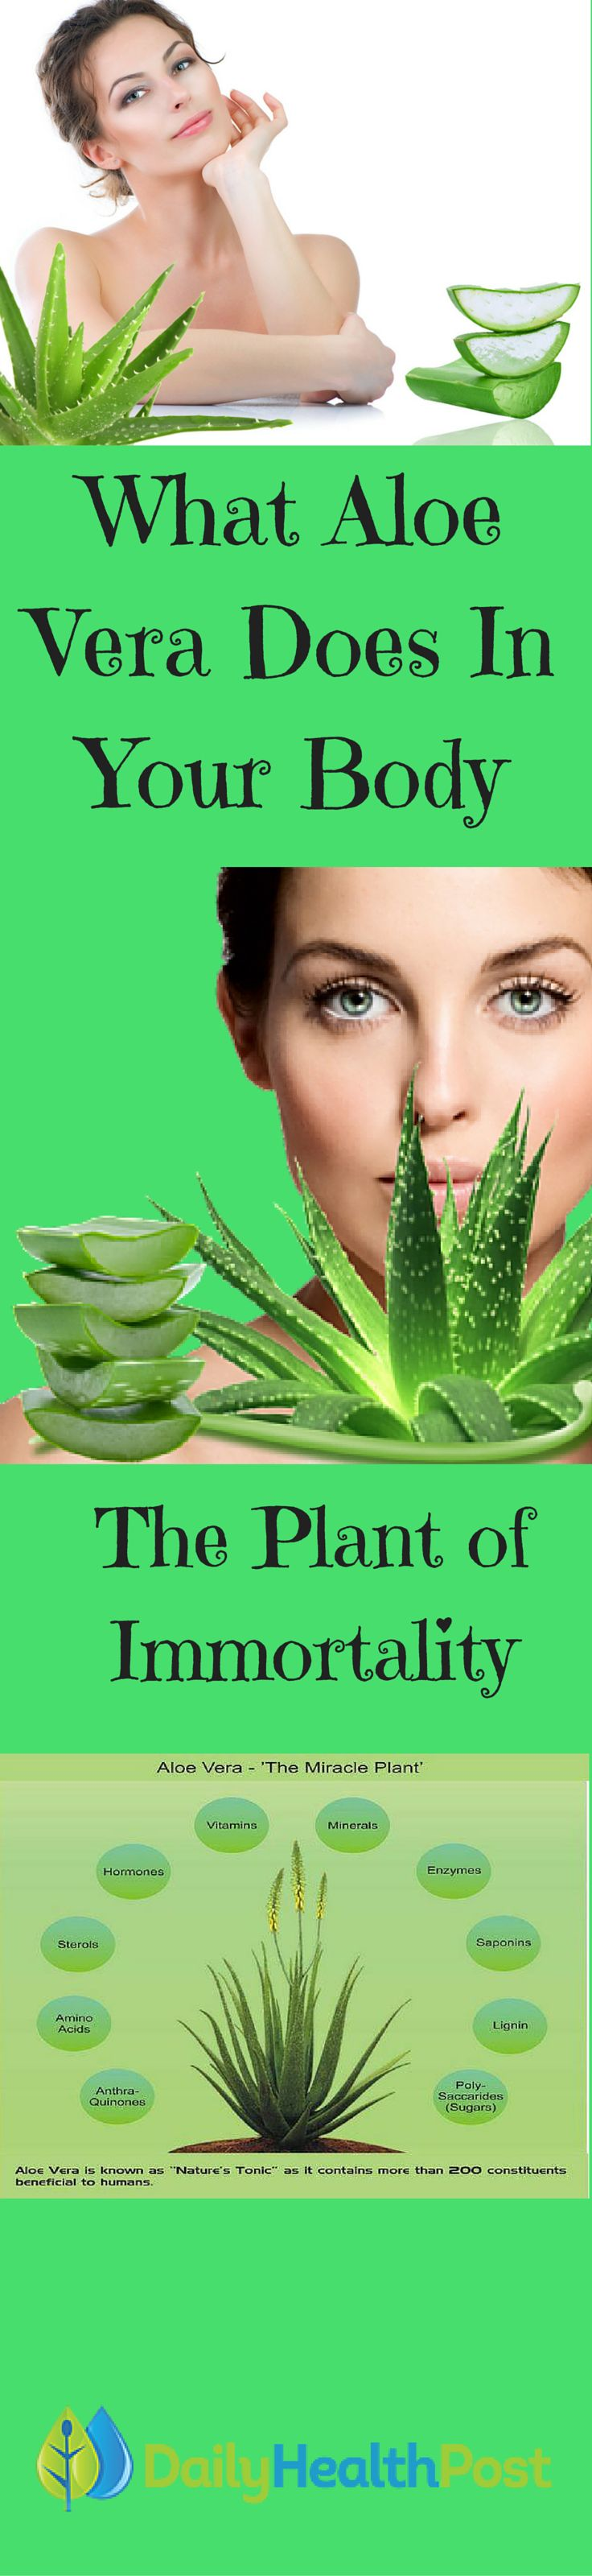 Aloe Vera is commonly thought of as a cute and easy to care for plant that instantly brightens any home.  And while the succulent has become more popular in American homes, many people don't realize that their decorative plant actually contains amazing healing properties.     In fact, the plant, also known as Aloe Barbadensis, has been used for thousands of years throughout the world. Find out more...